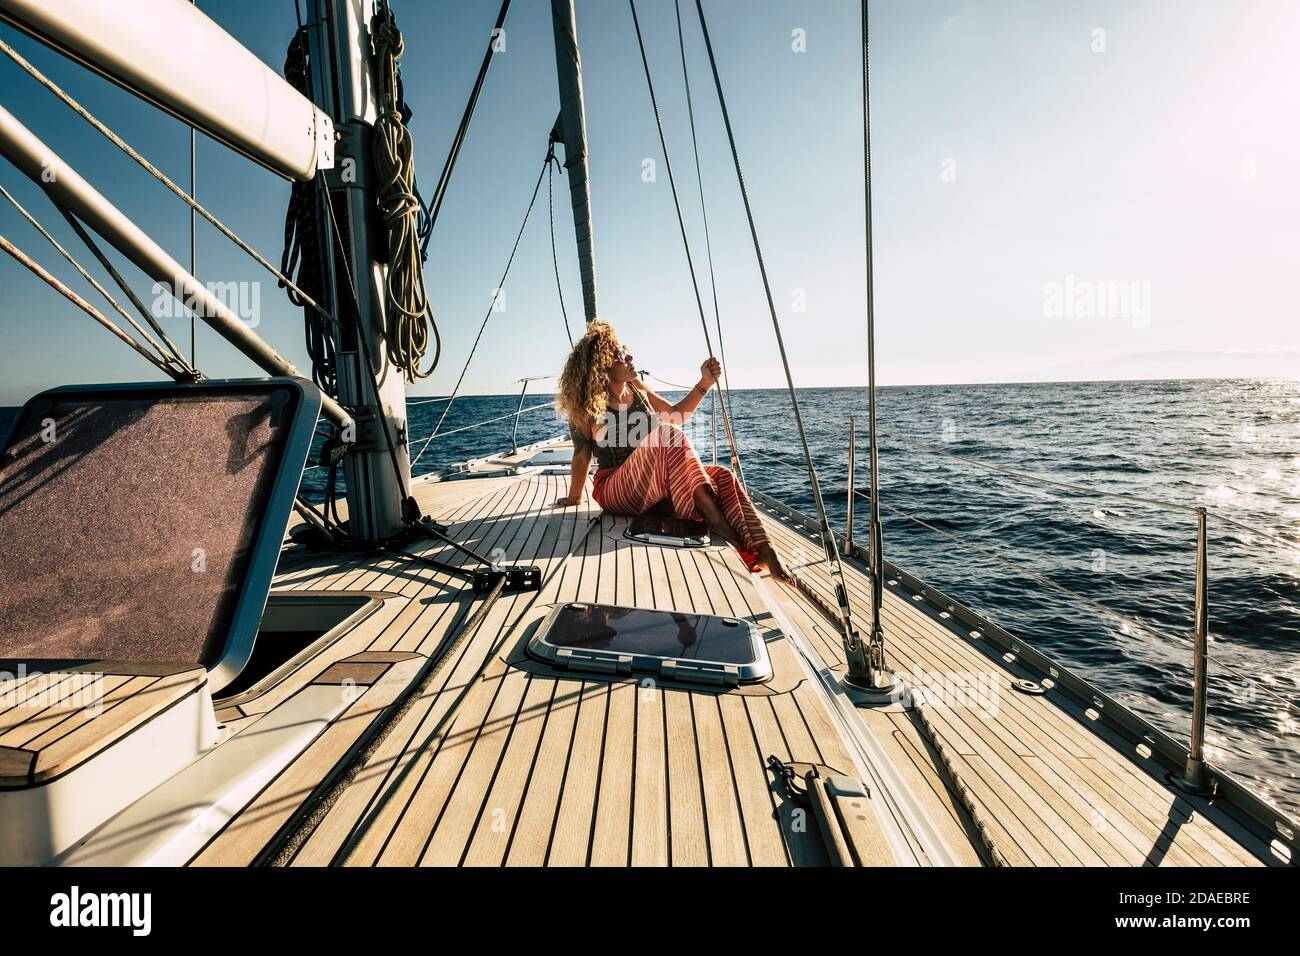 Beautiful young woman enjoy summer holiday vacation or excursion on sailboat with sun and ocean around - people enjoying life and lifestyle - travel and transport on sea concept Stock Photo